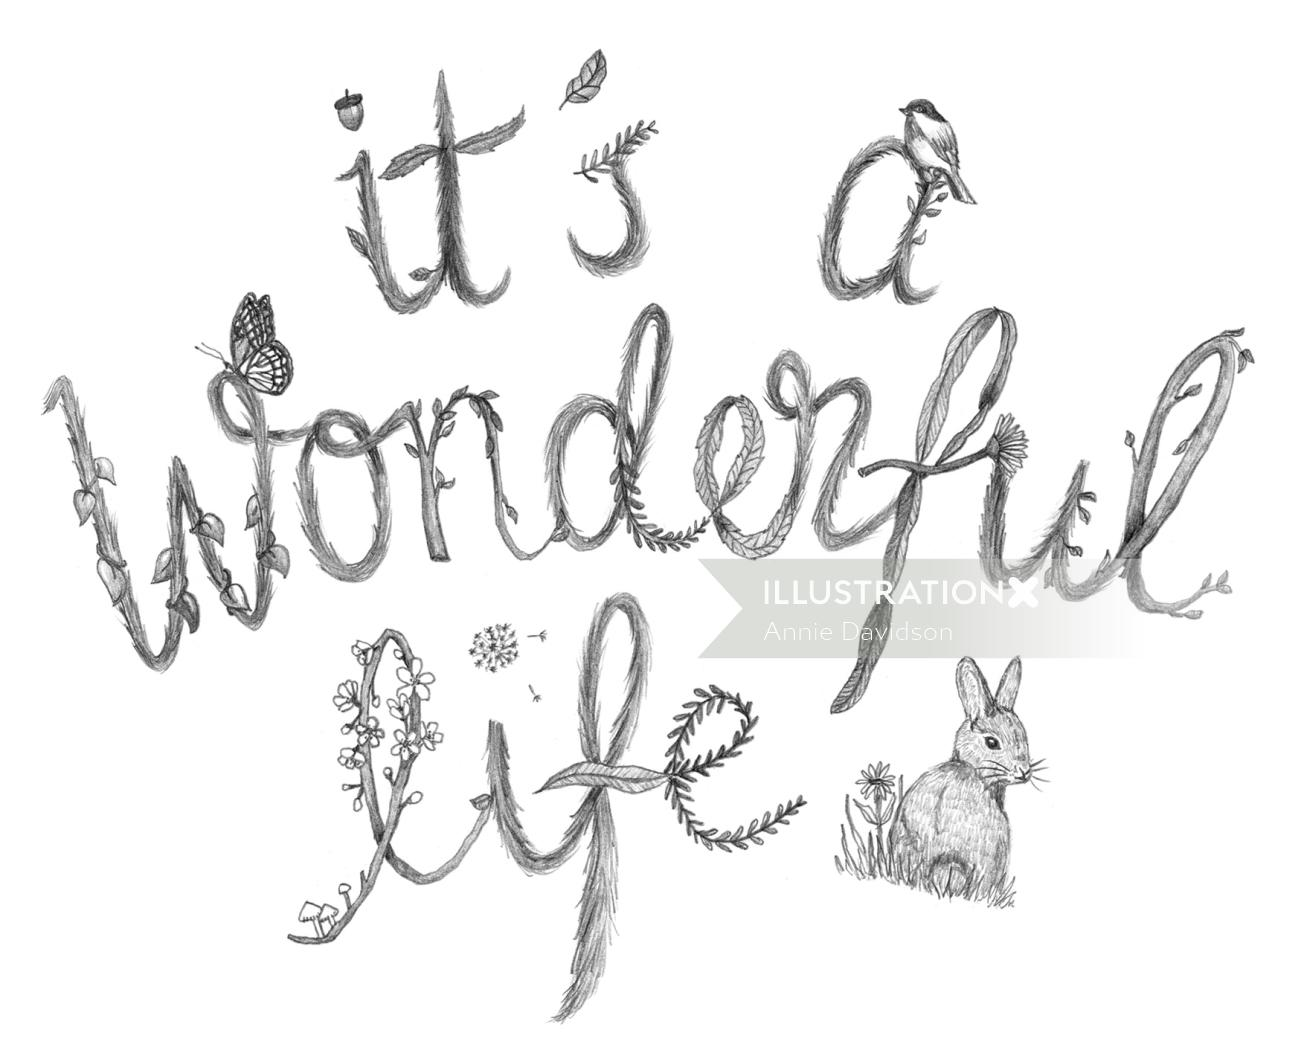 Typography of It's a wonderful life